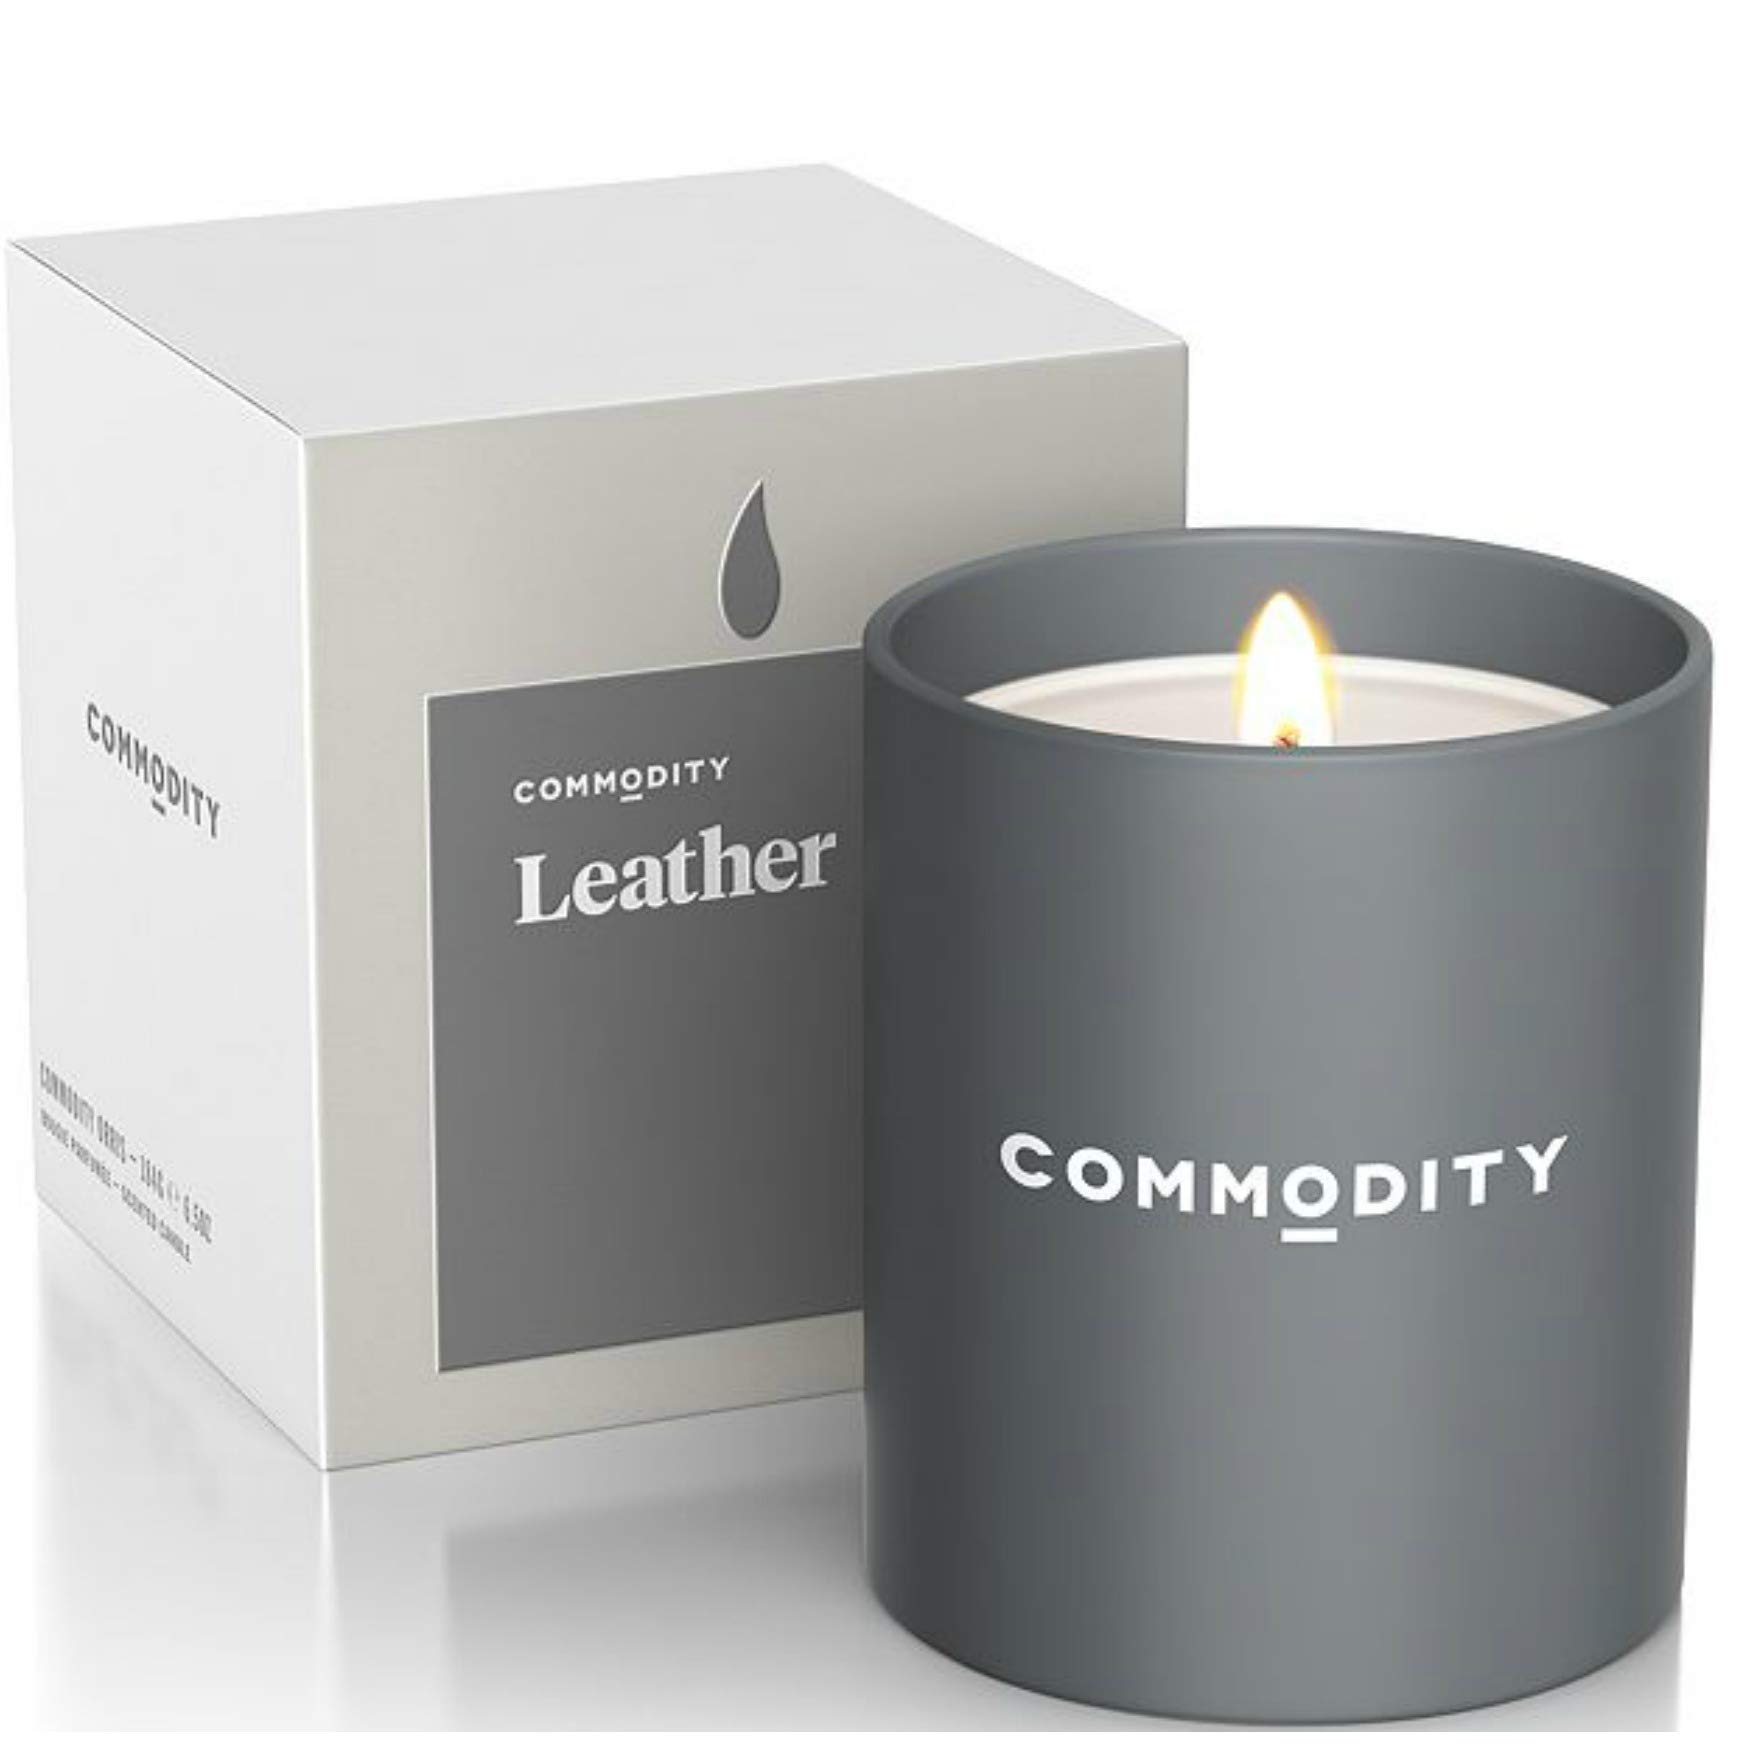 Leather by Commodity